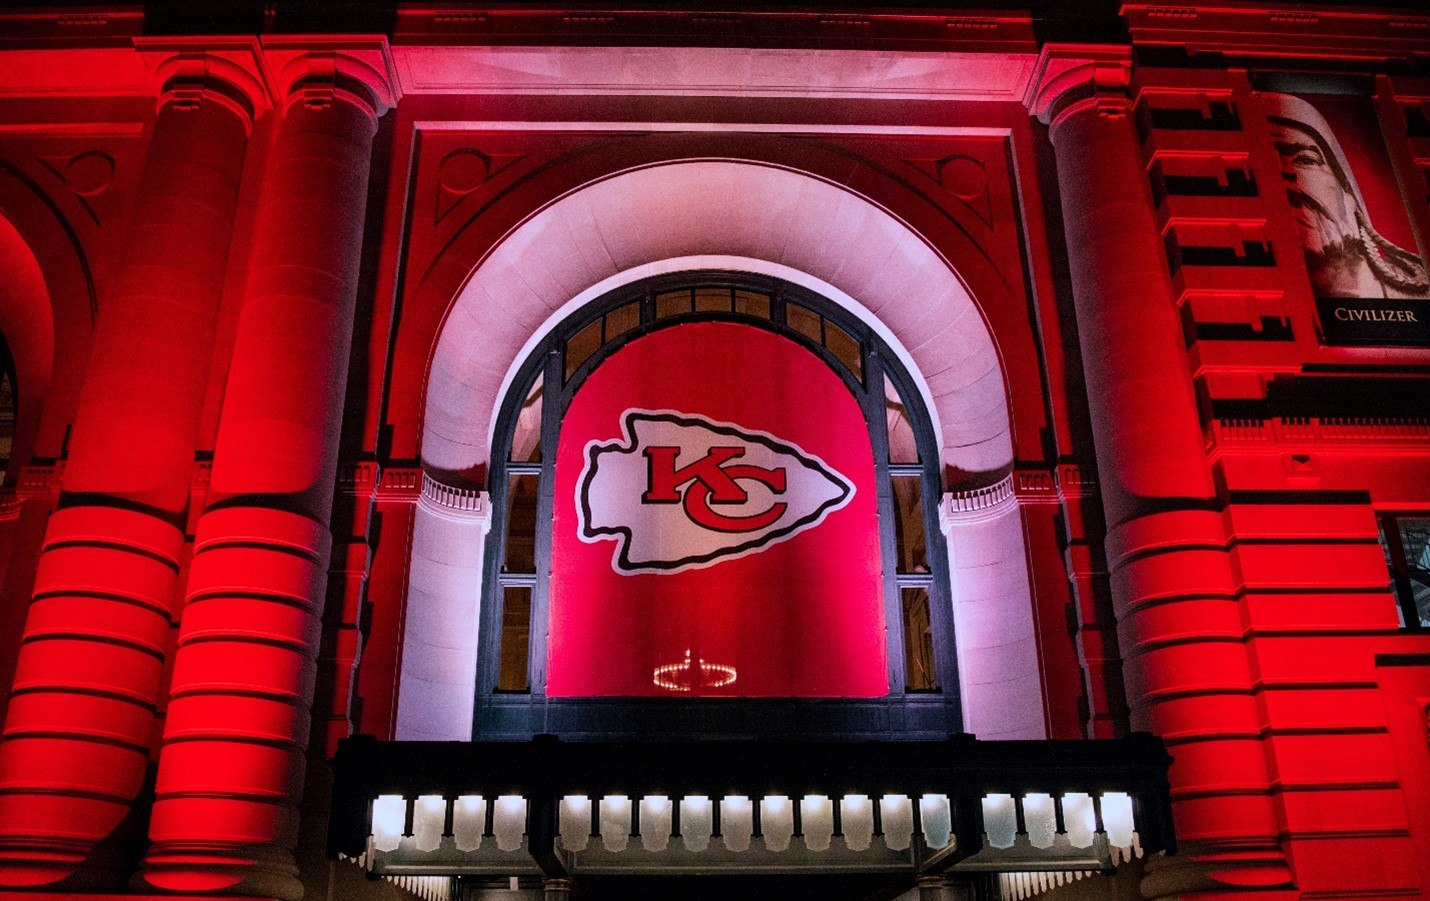 Kansas City Chiefs Red Banner lit up on display on the side of a building